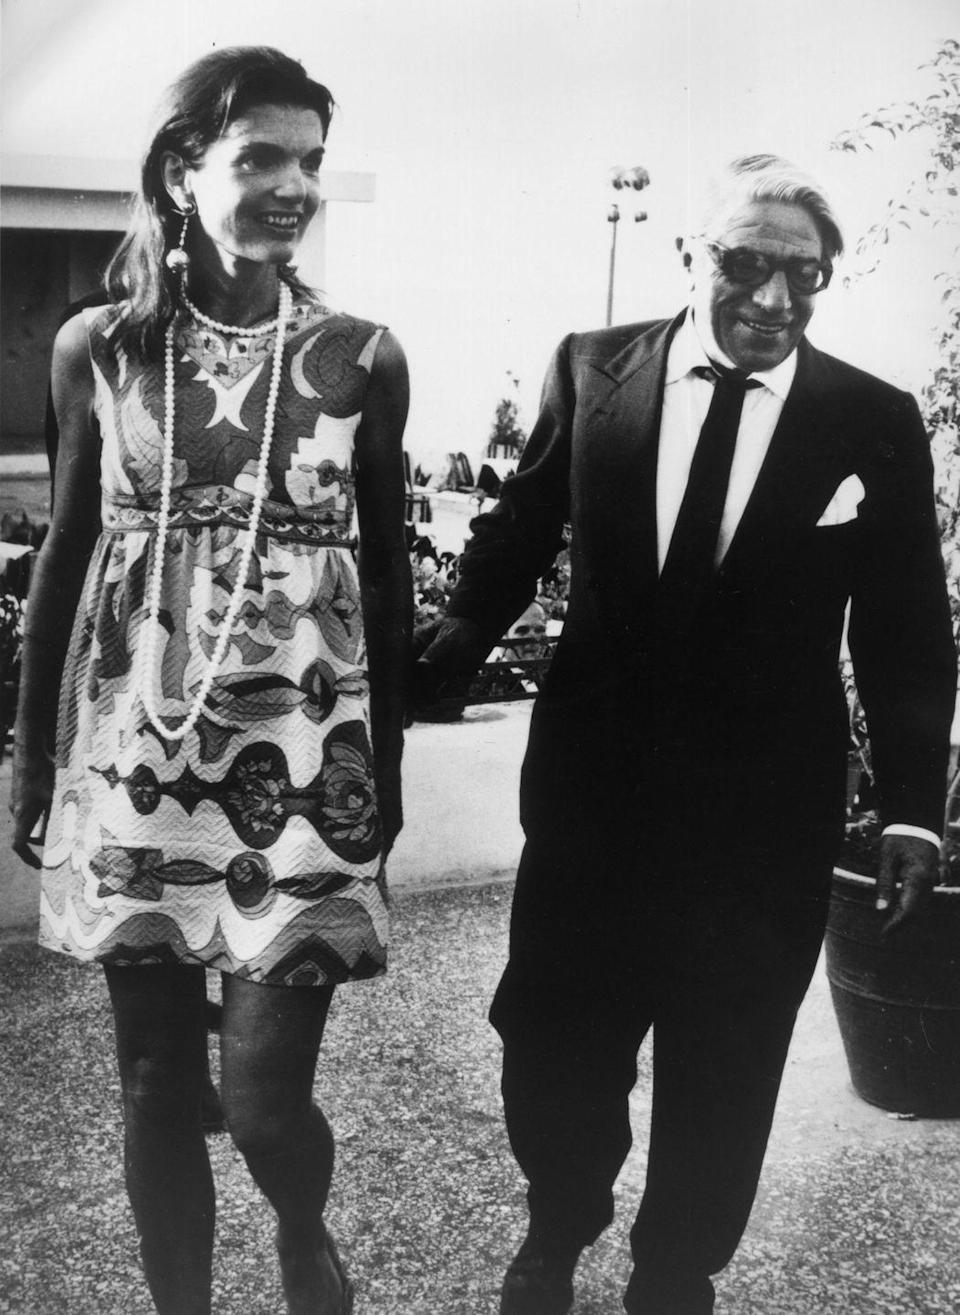 <p>Jackie and her second husband, Aristotle Onassis, leave an Athens nightclub after celebrating her 40th birthday. Jackie wears a minidress with a bold pattern, a long string of pearls, and Lalaounis earrings.<br></p>